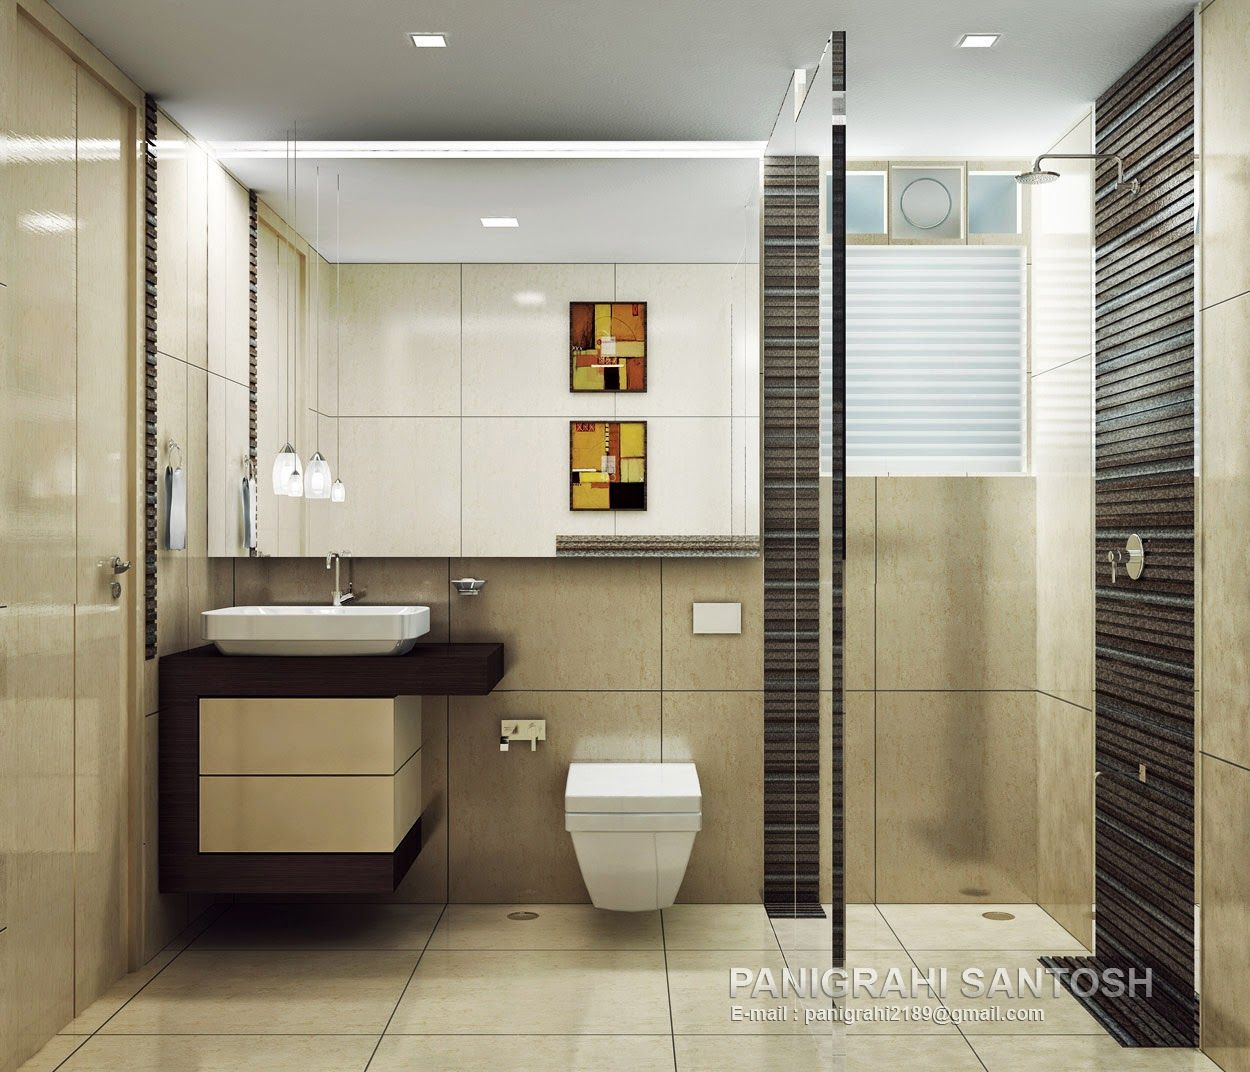 Imaginatio is creation 3ds max with vray projects for Bathroom design 3ds max